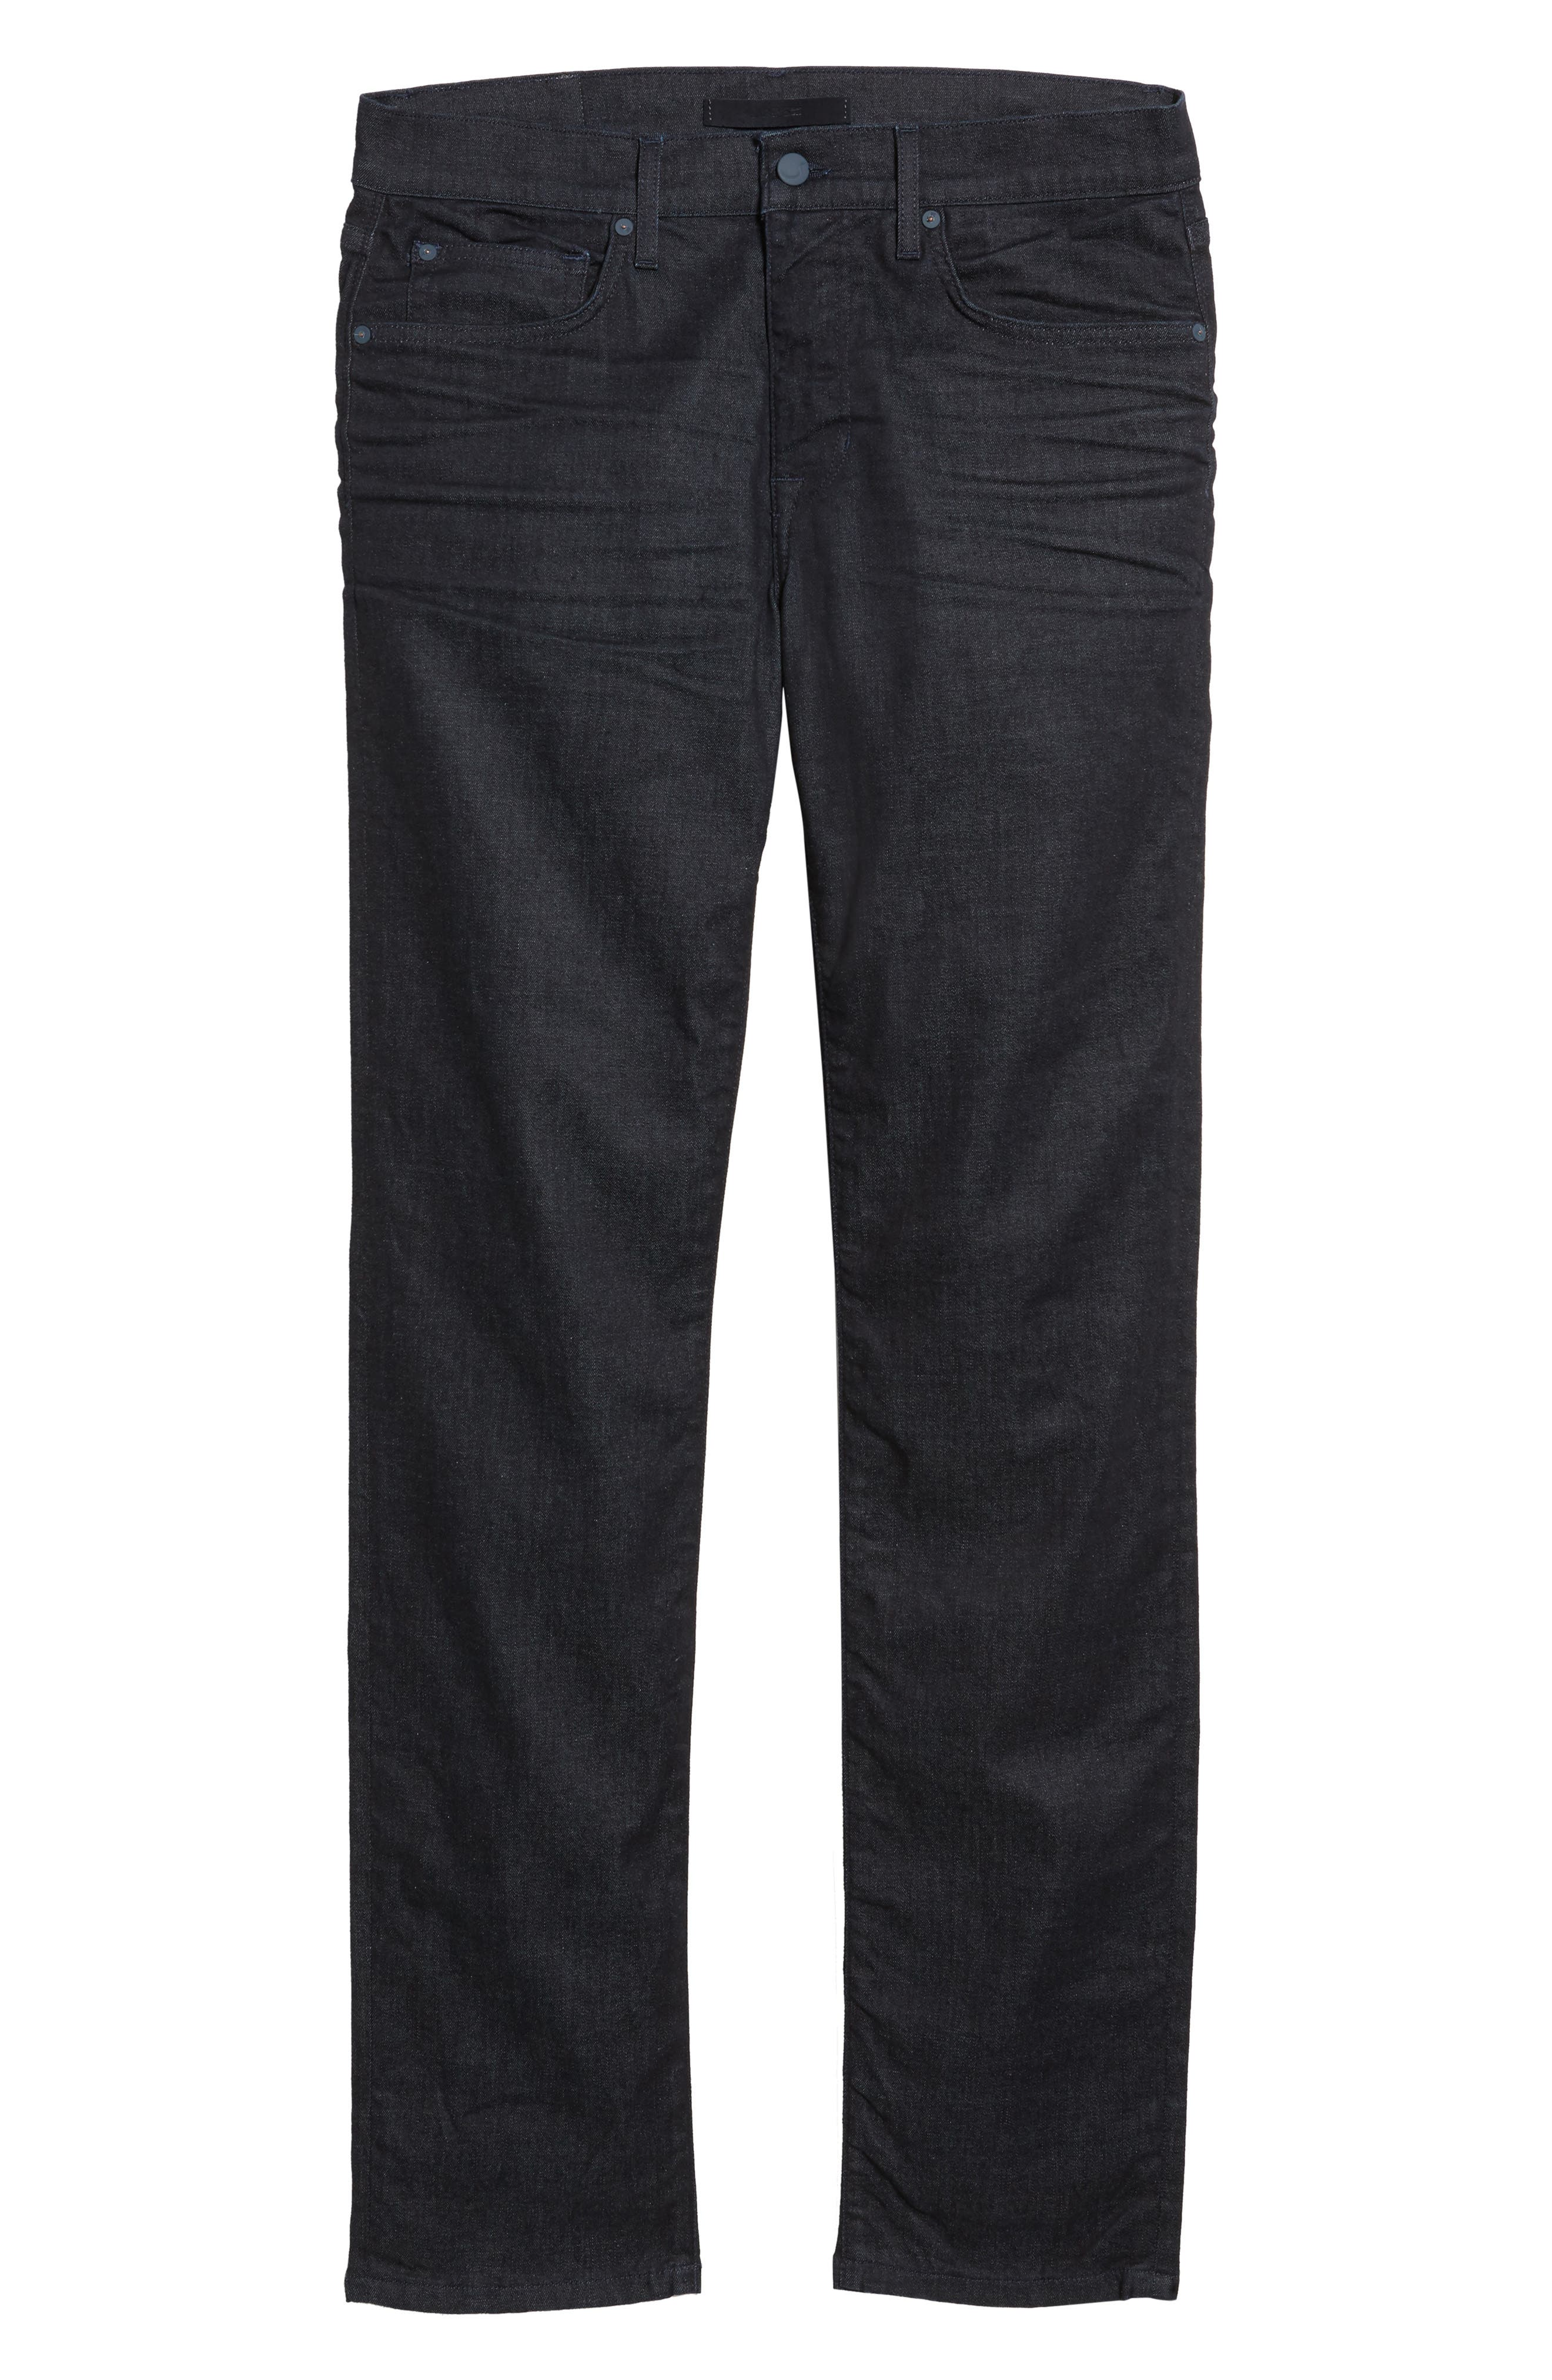 Brixton Slim Straight Fit Jeans,                             Alternate thumbnail 6, color,                             Foster